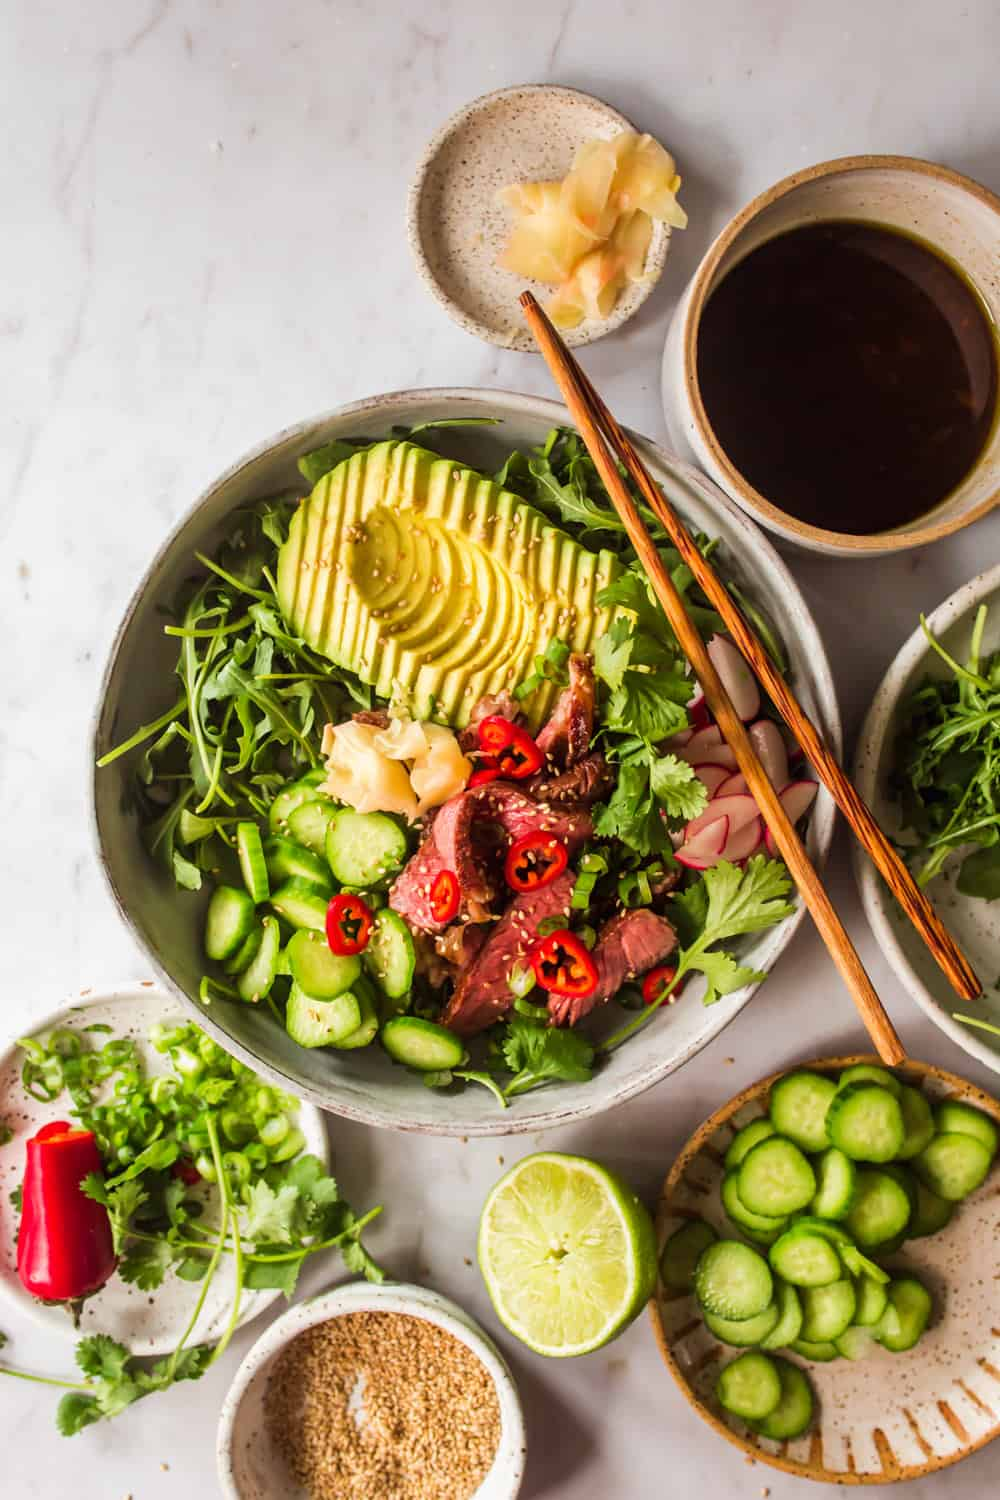 Large grey bowl with chopsticks filled with arugula, avocado, cucumber, steak, and vegetables. Small bowls with salad ingredients on the side.